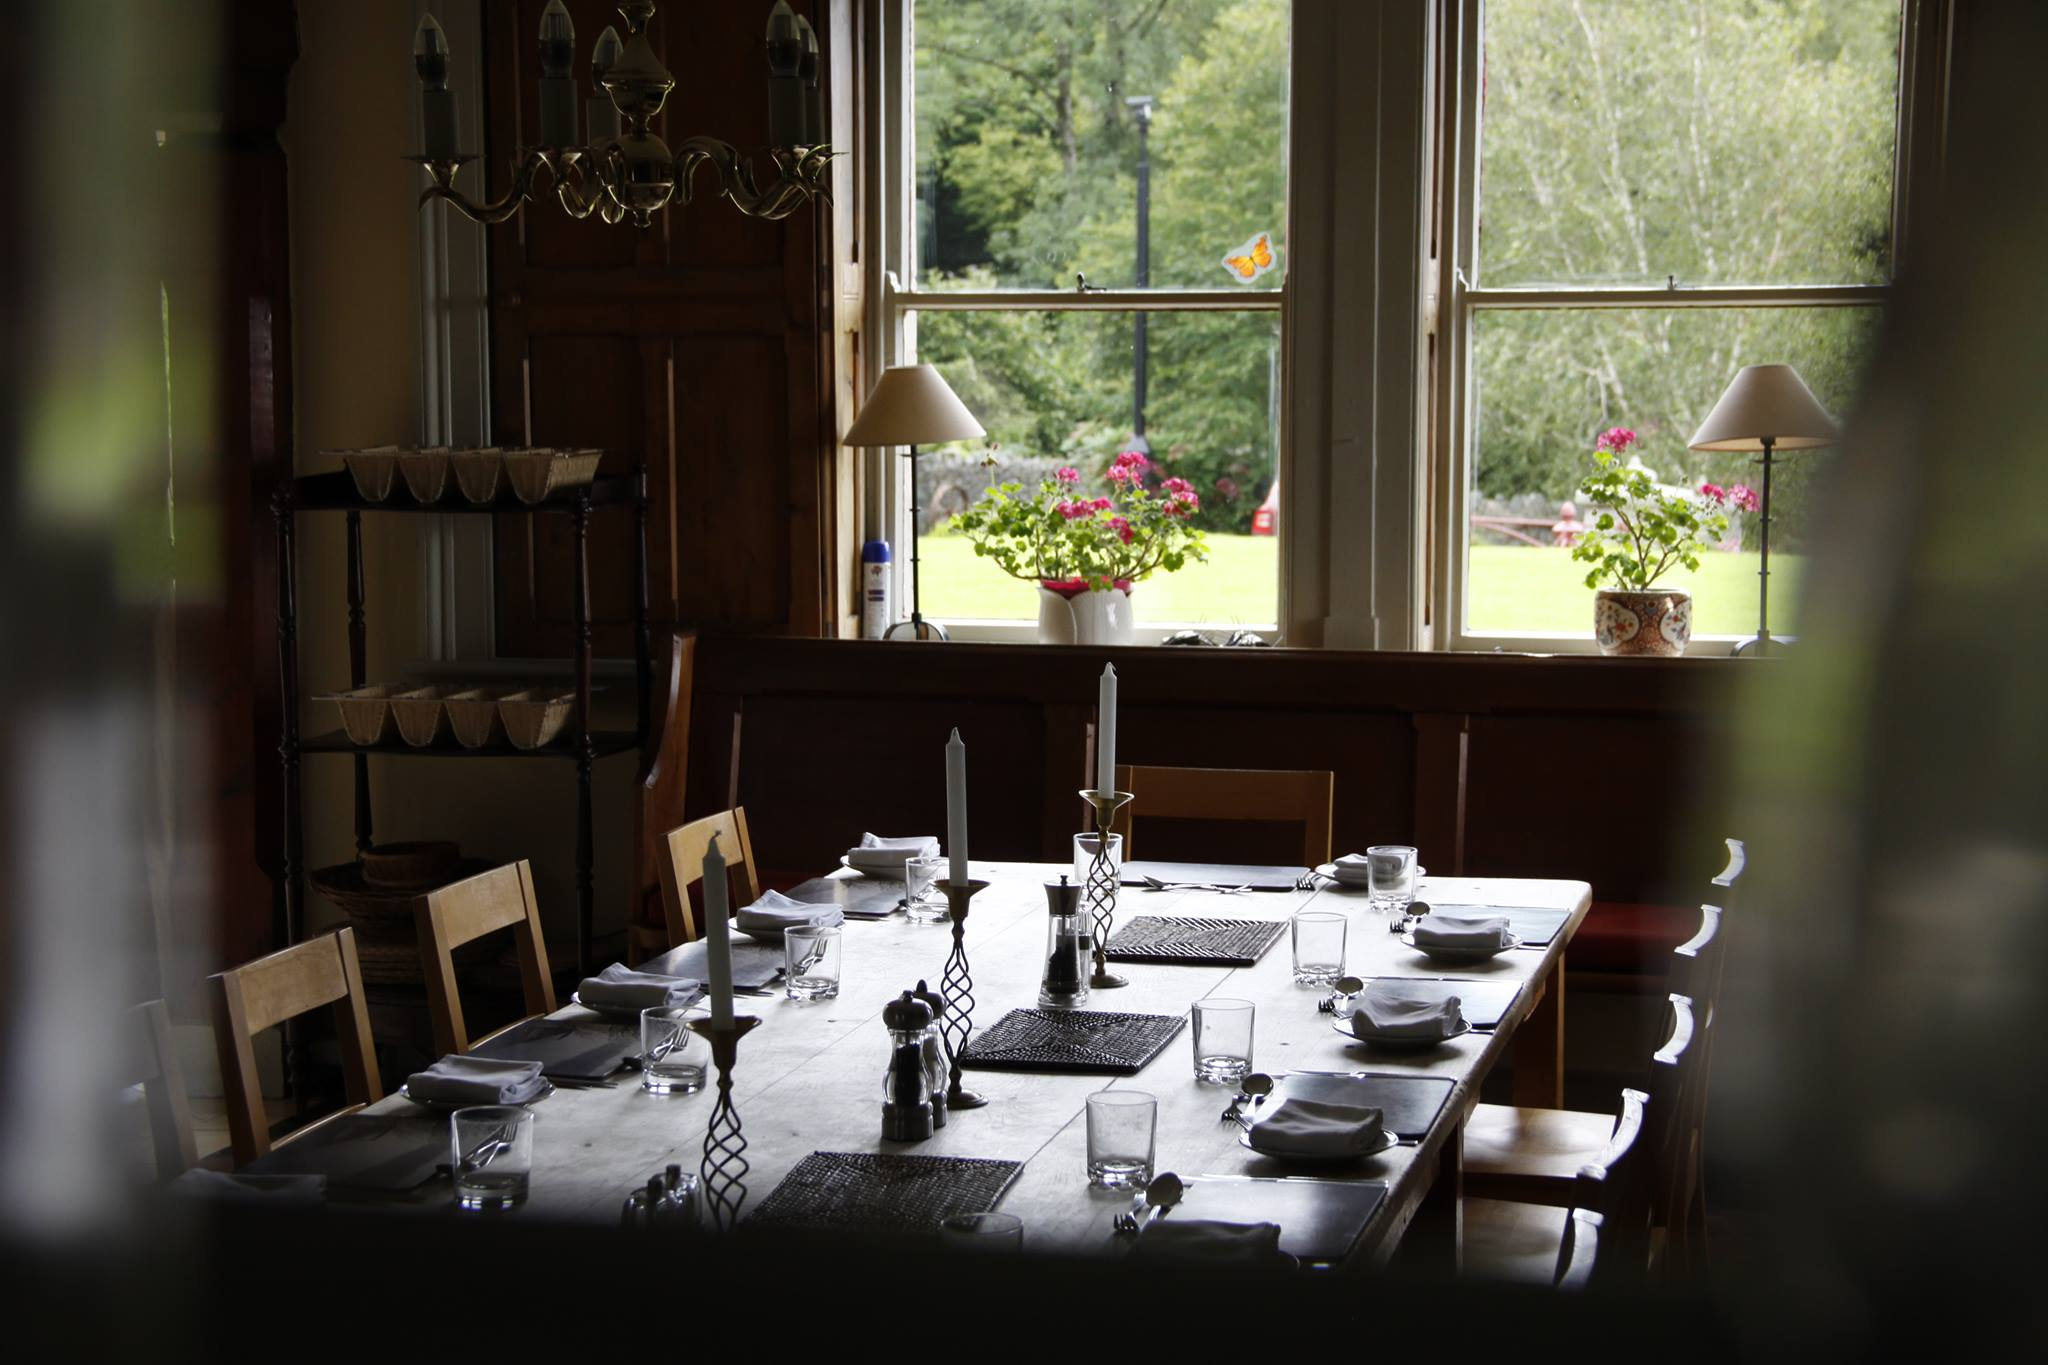 The dining space where creatives meet each evening for beautifully cooked meals